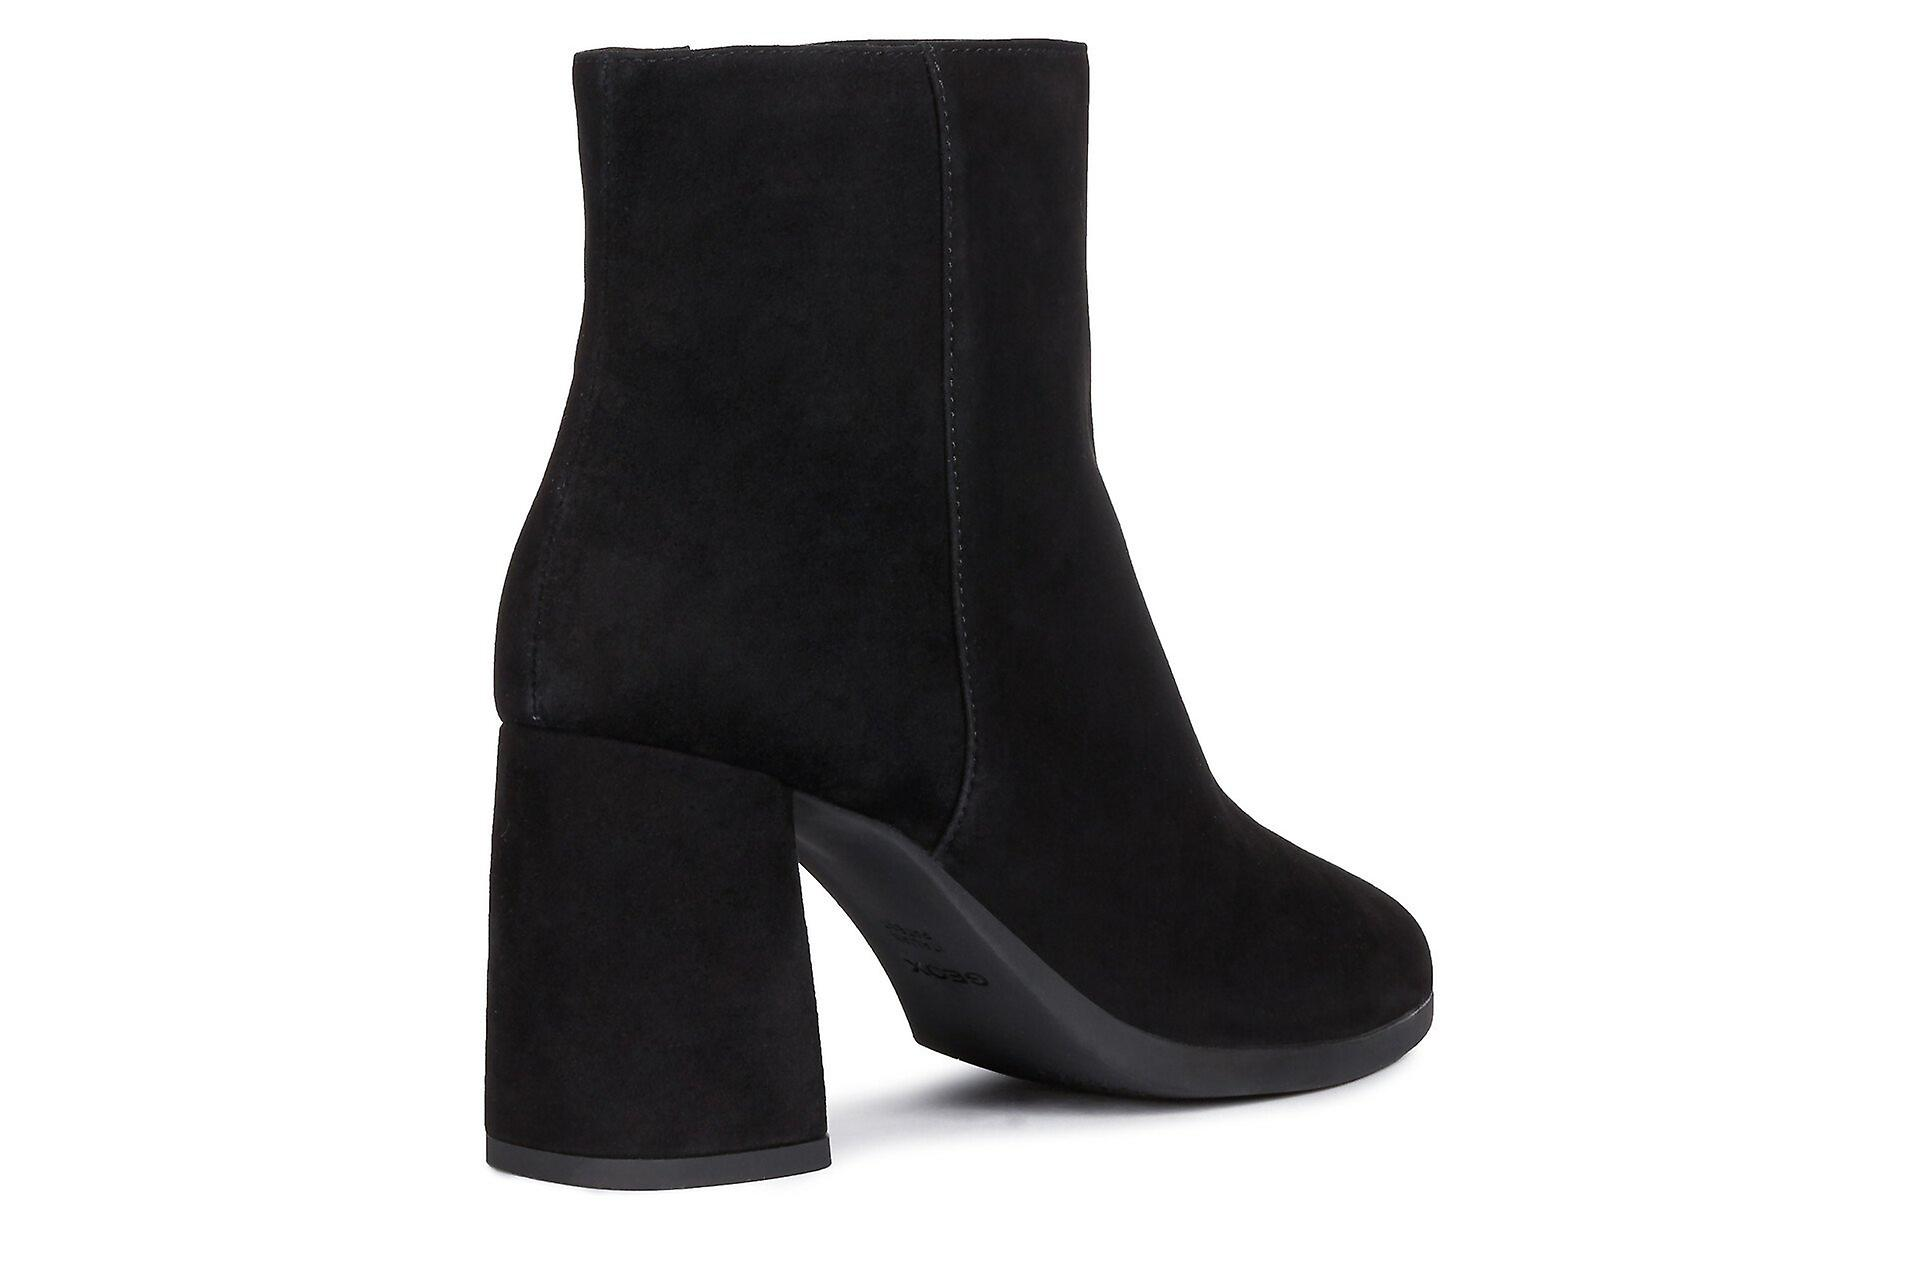 Geox d calinda h a ankle boots womens black